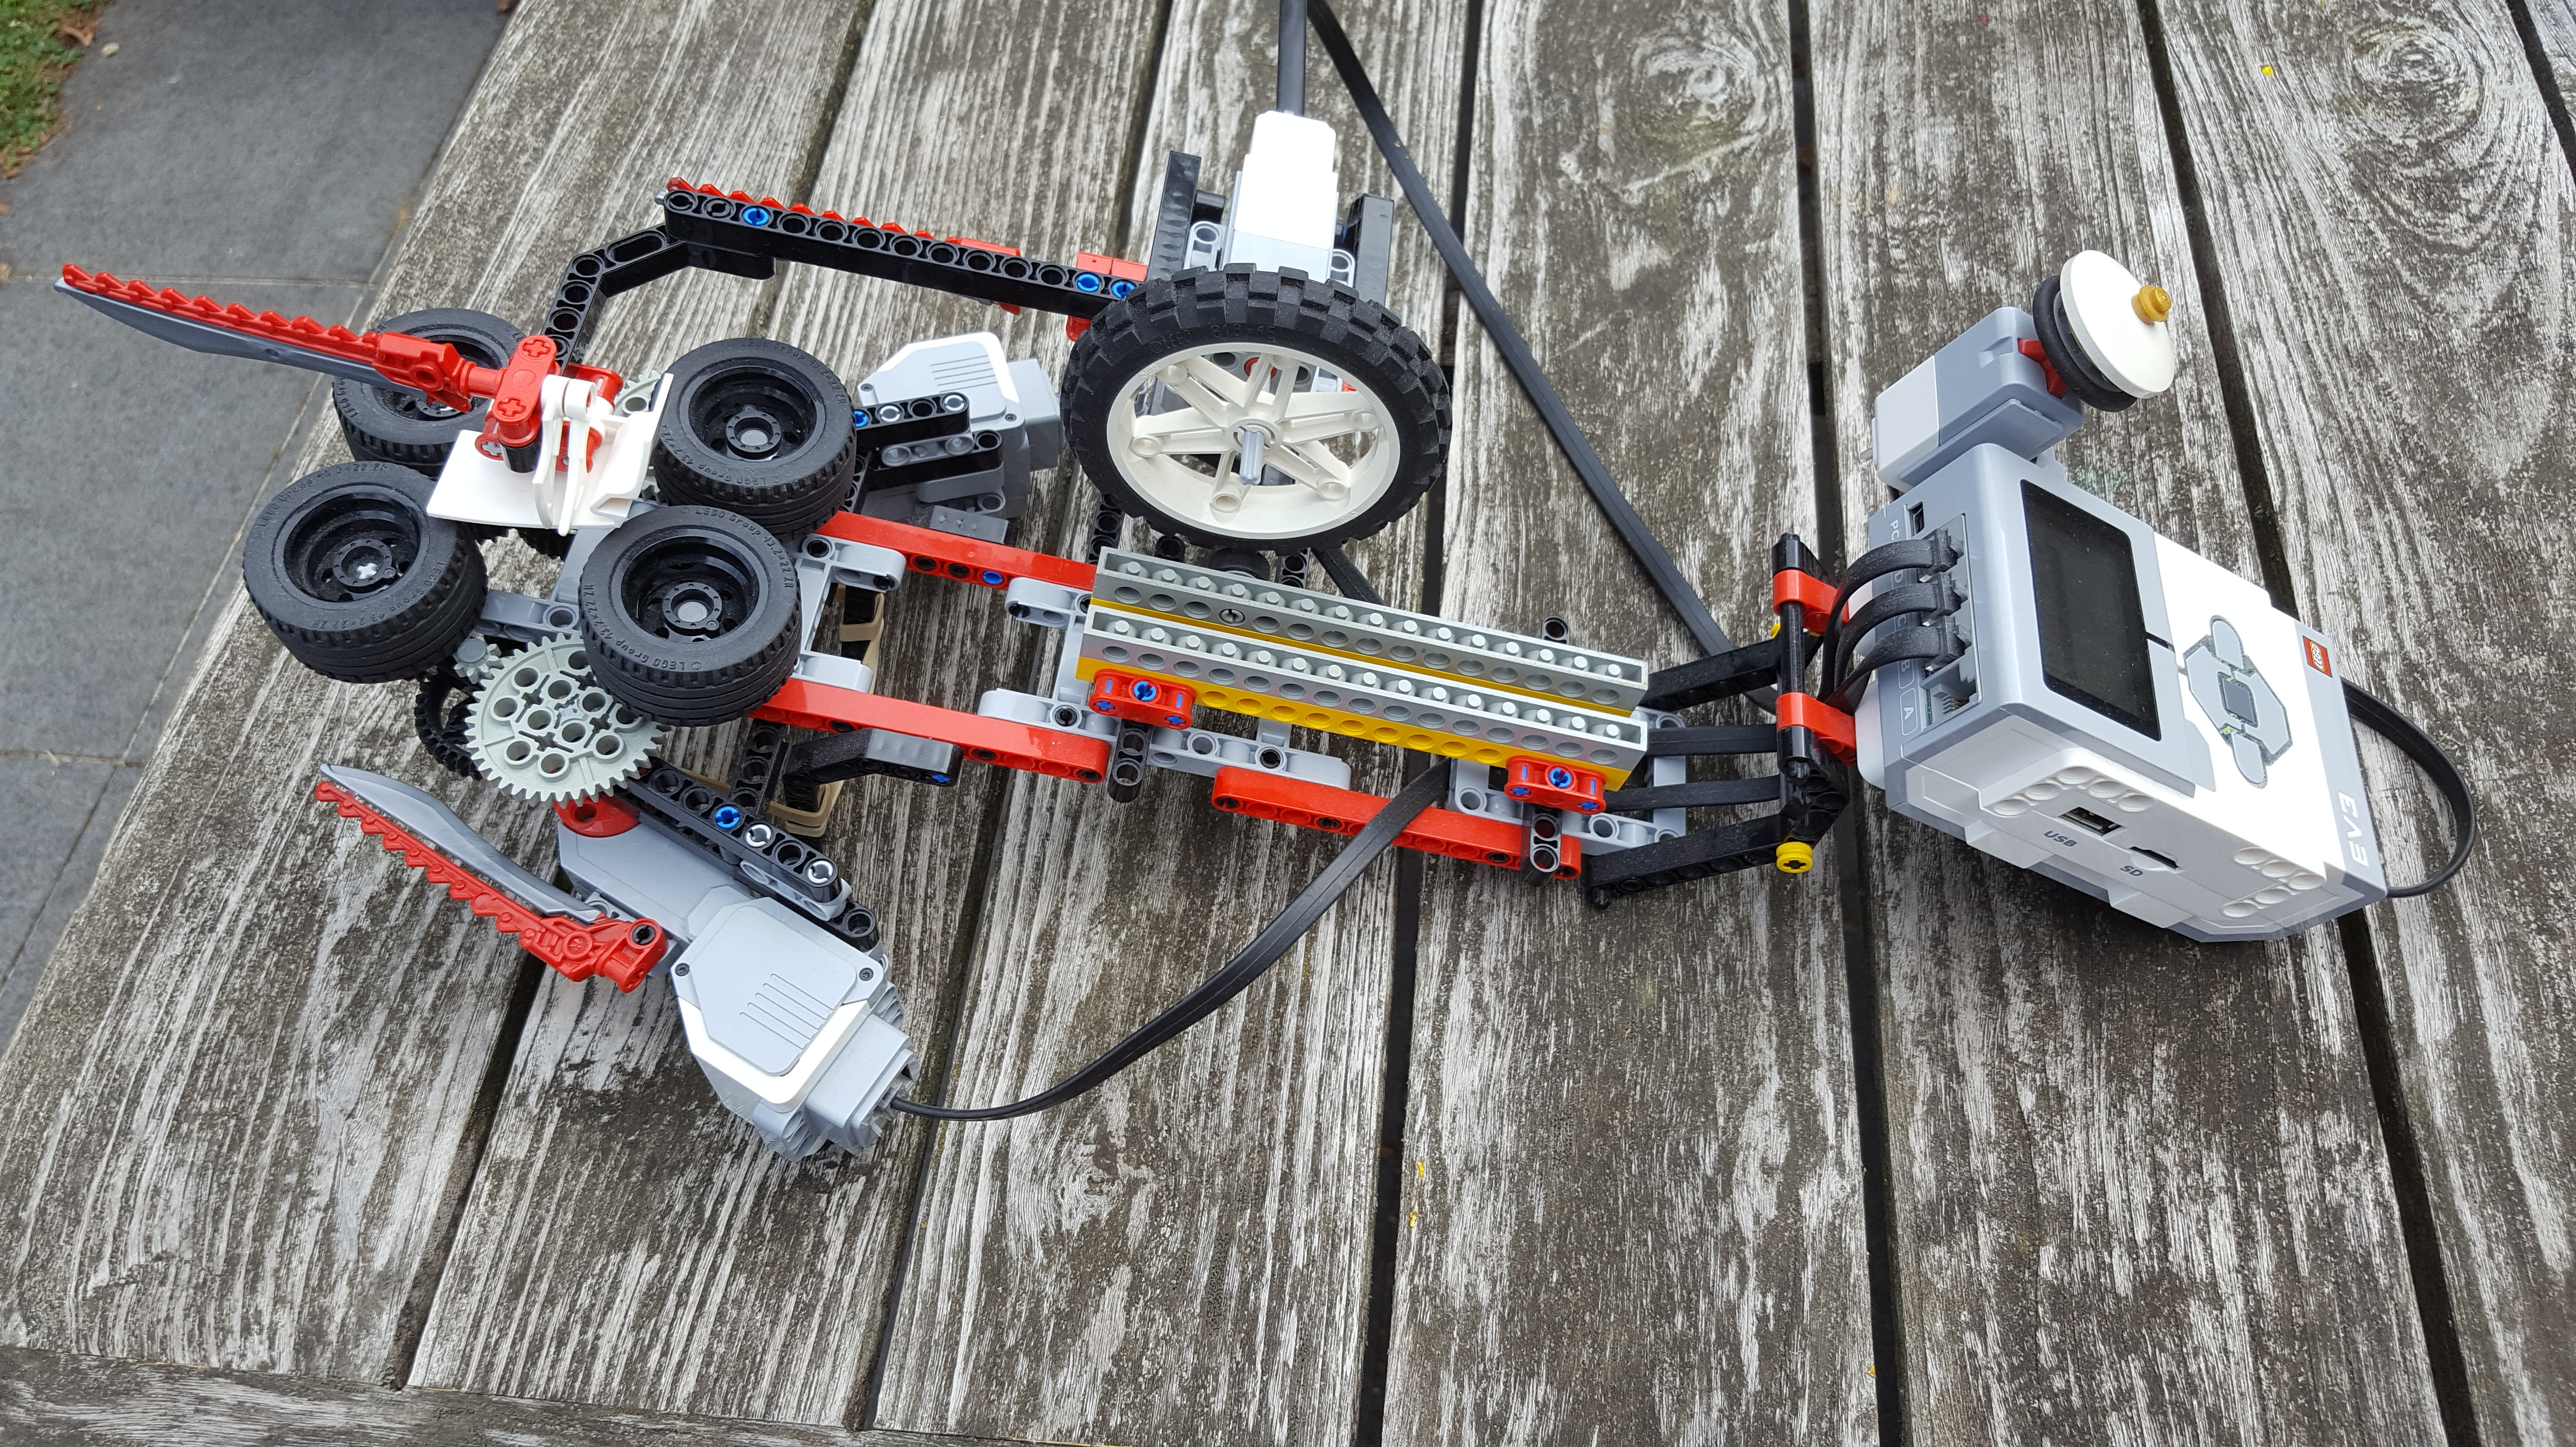 Lego Mindstorms EV3 Paper Plane Launcher side view